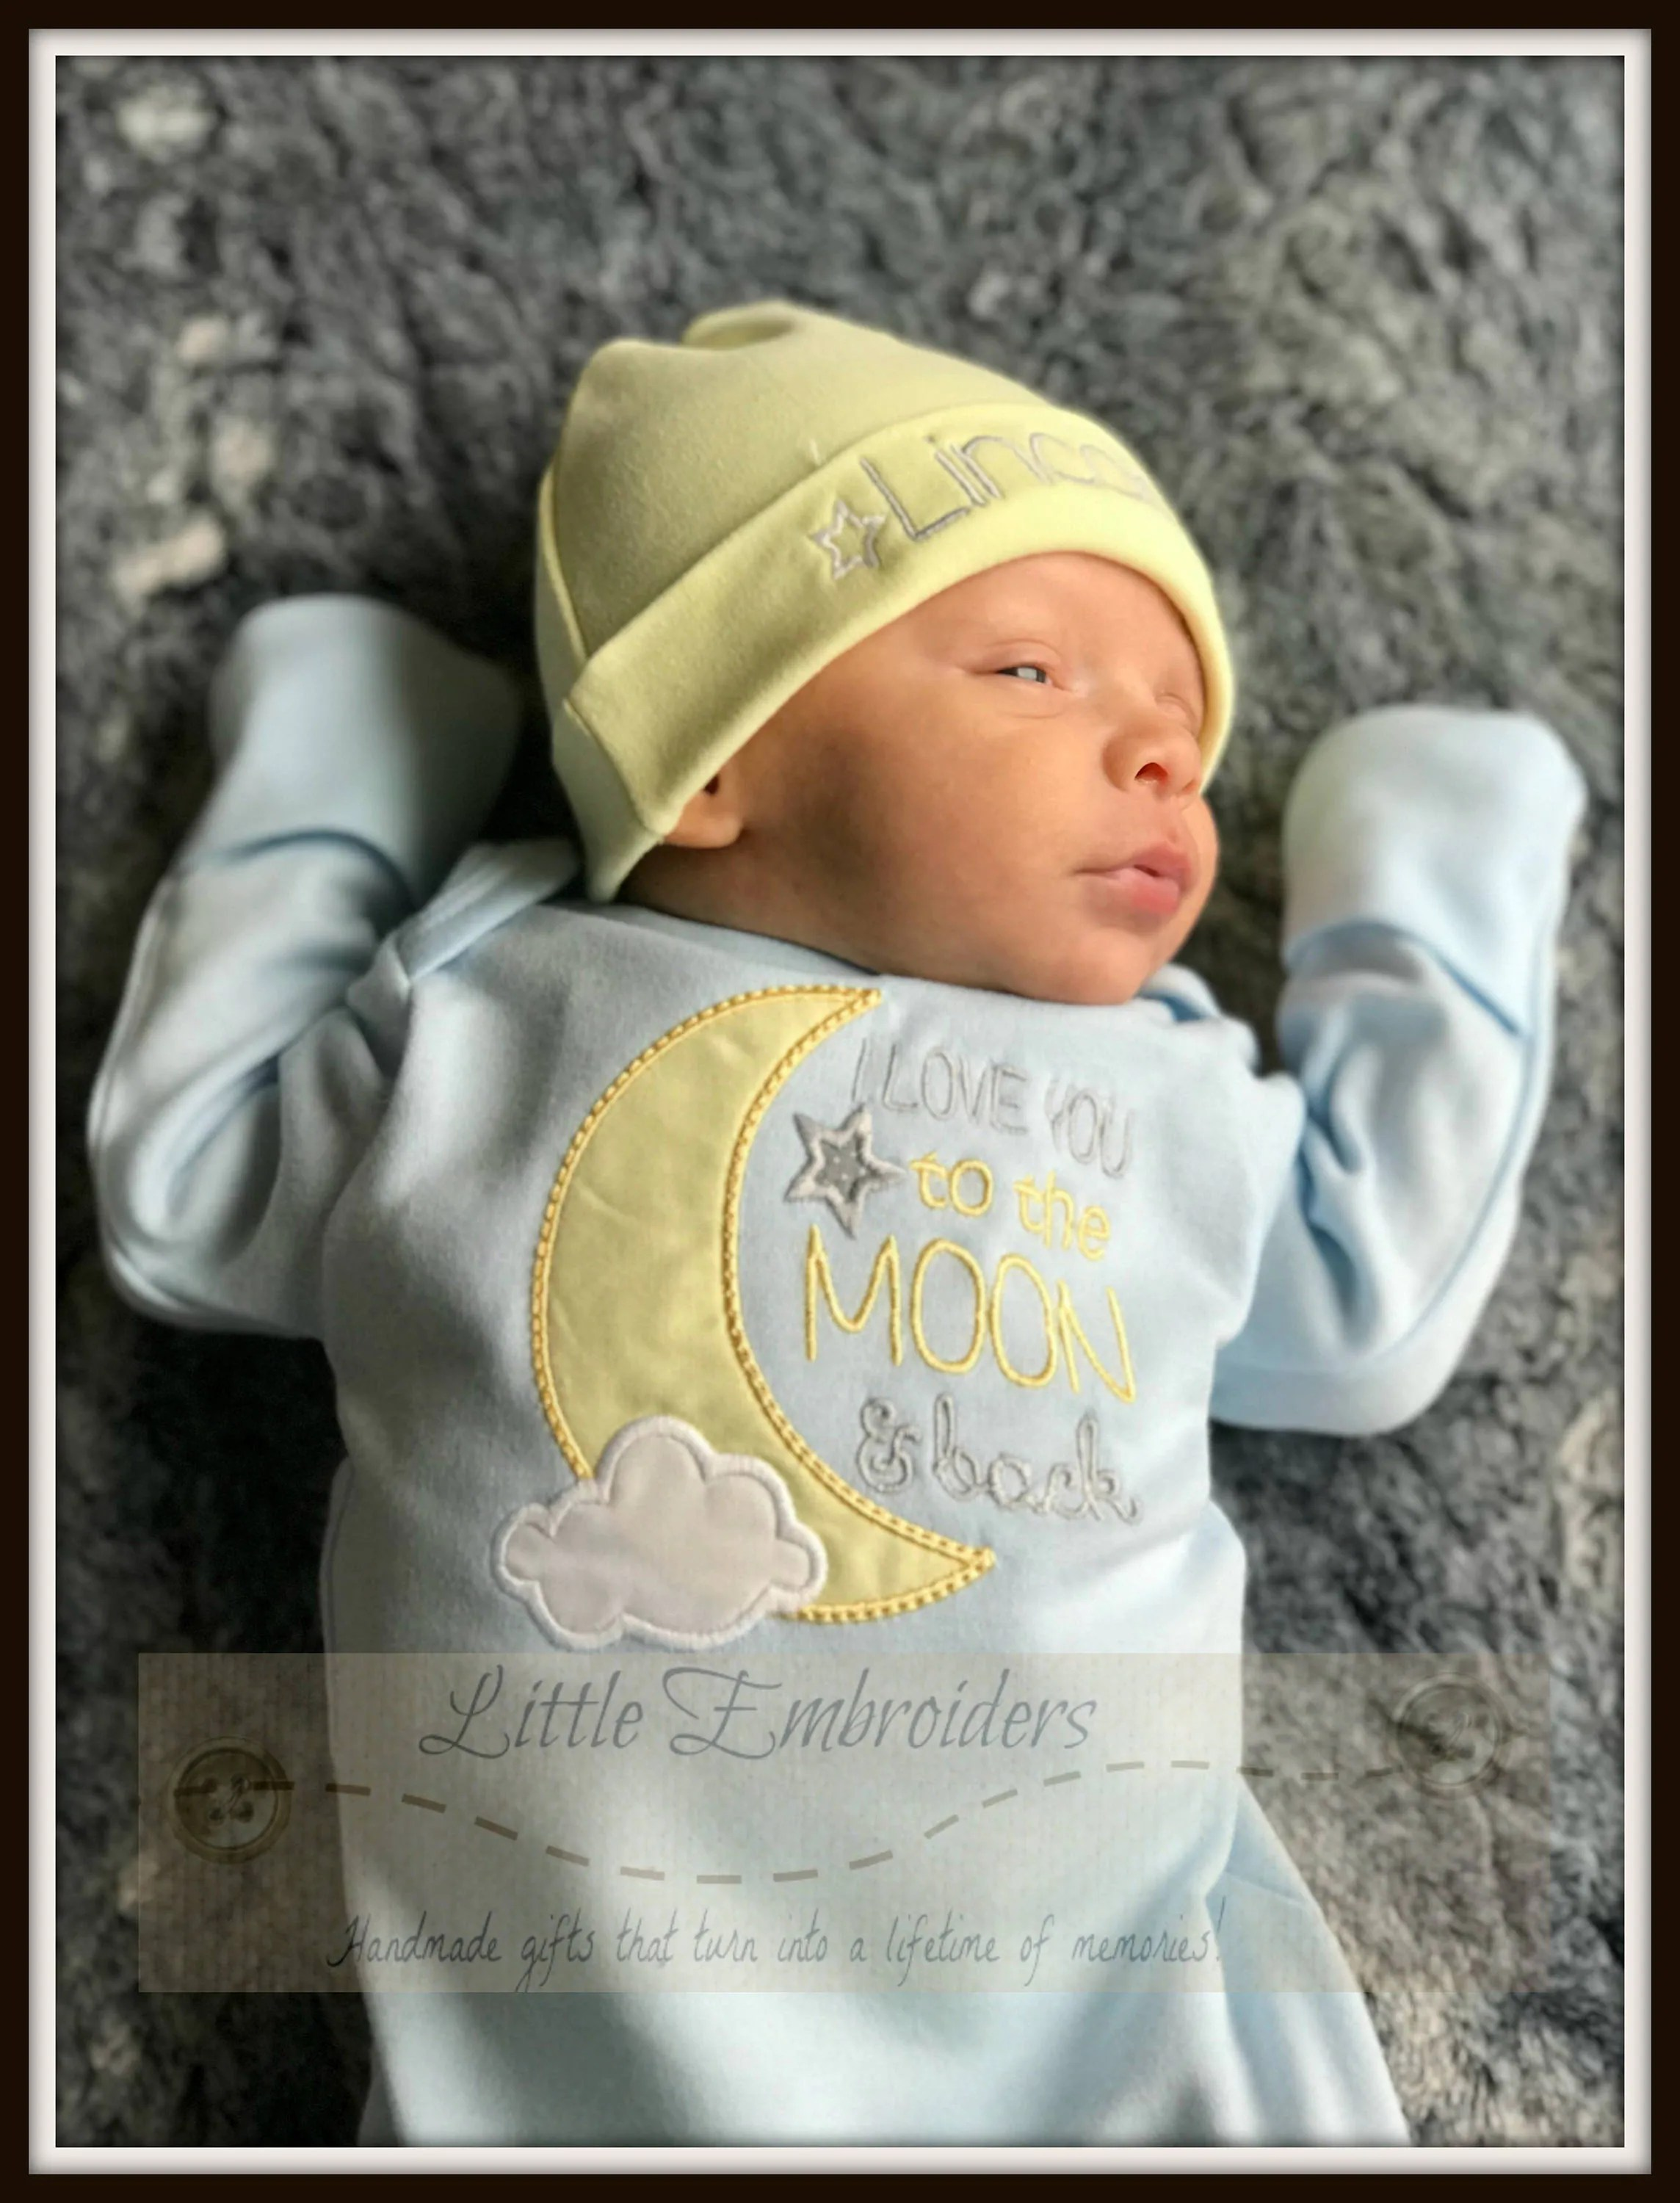 Newborn Boy Outfits For Pictures : newborn, outfits, pictures, Coming, Outfit, Back-, Newborn, Hospital